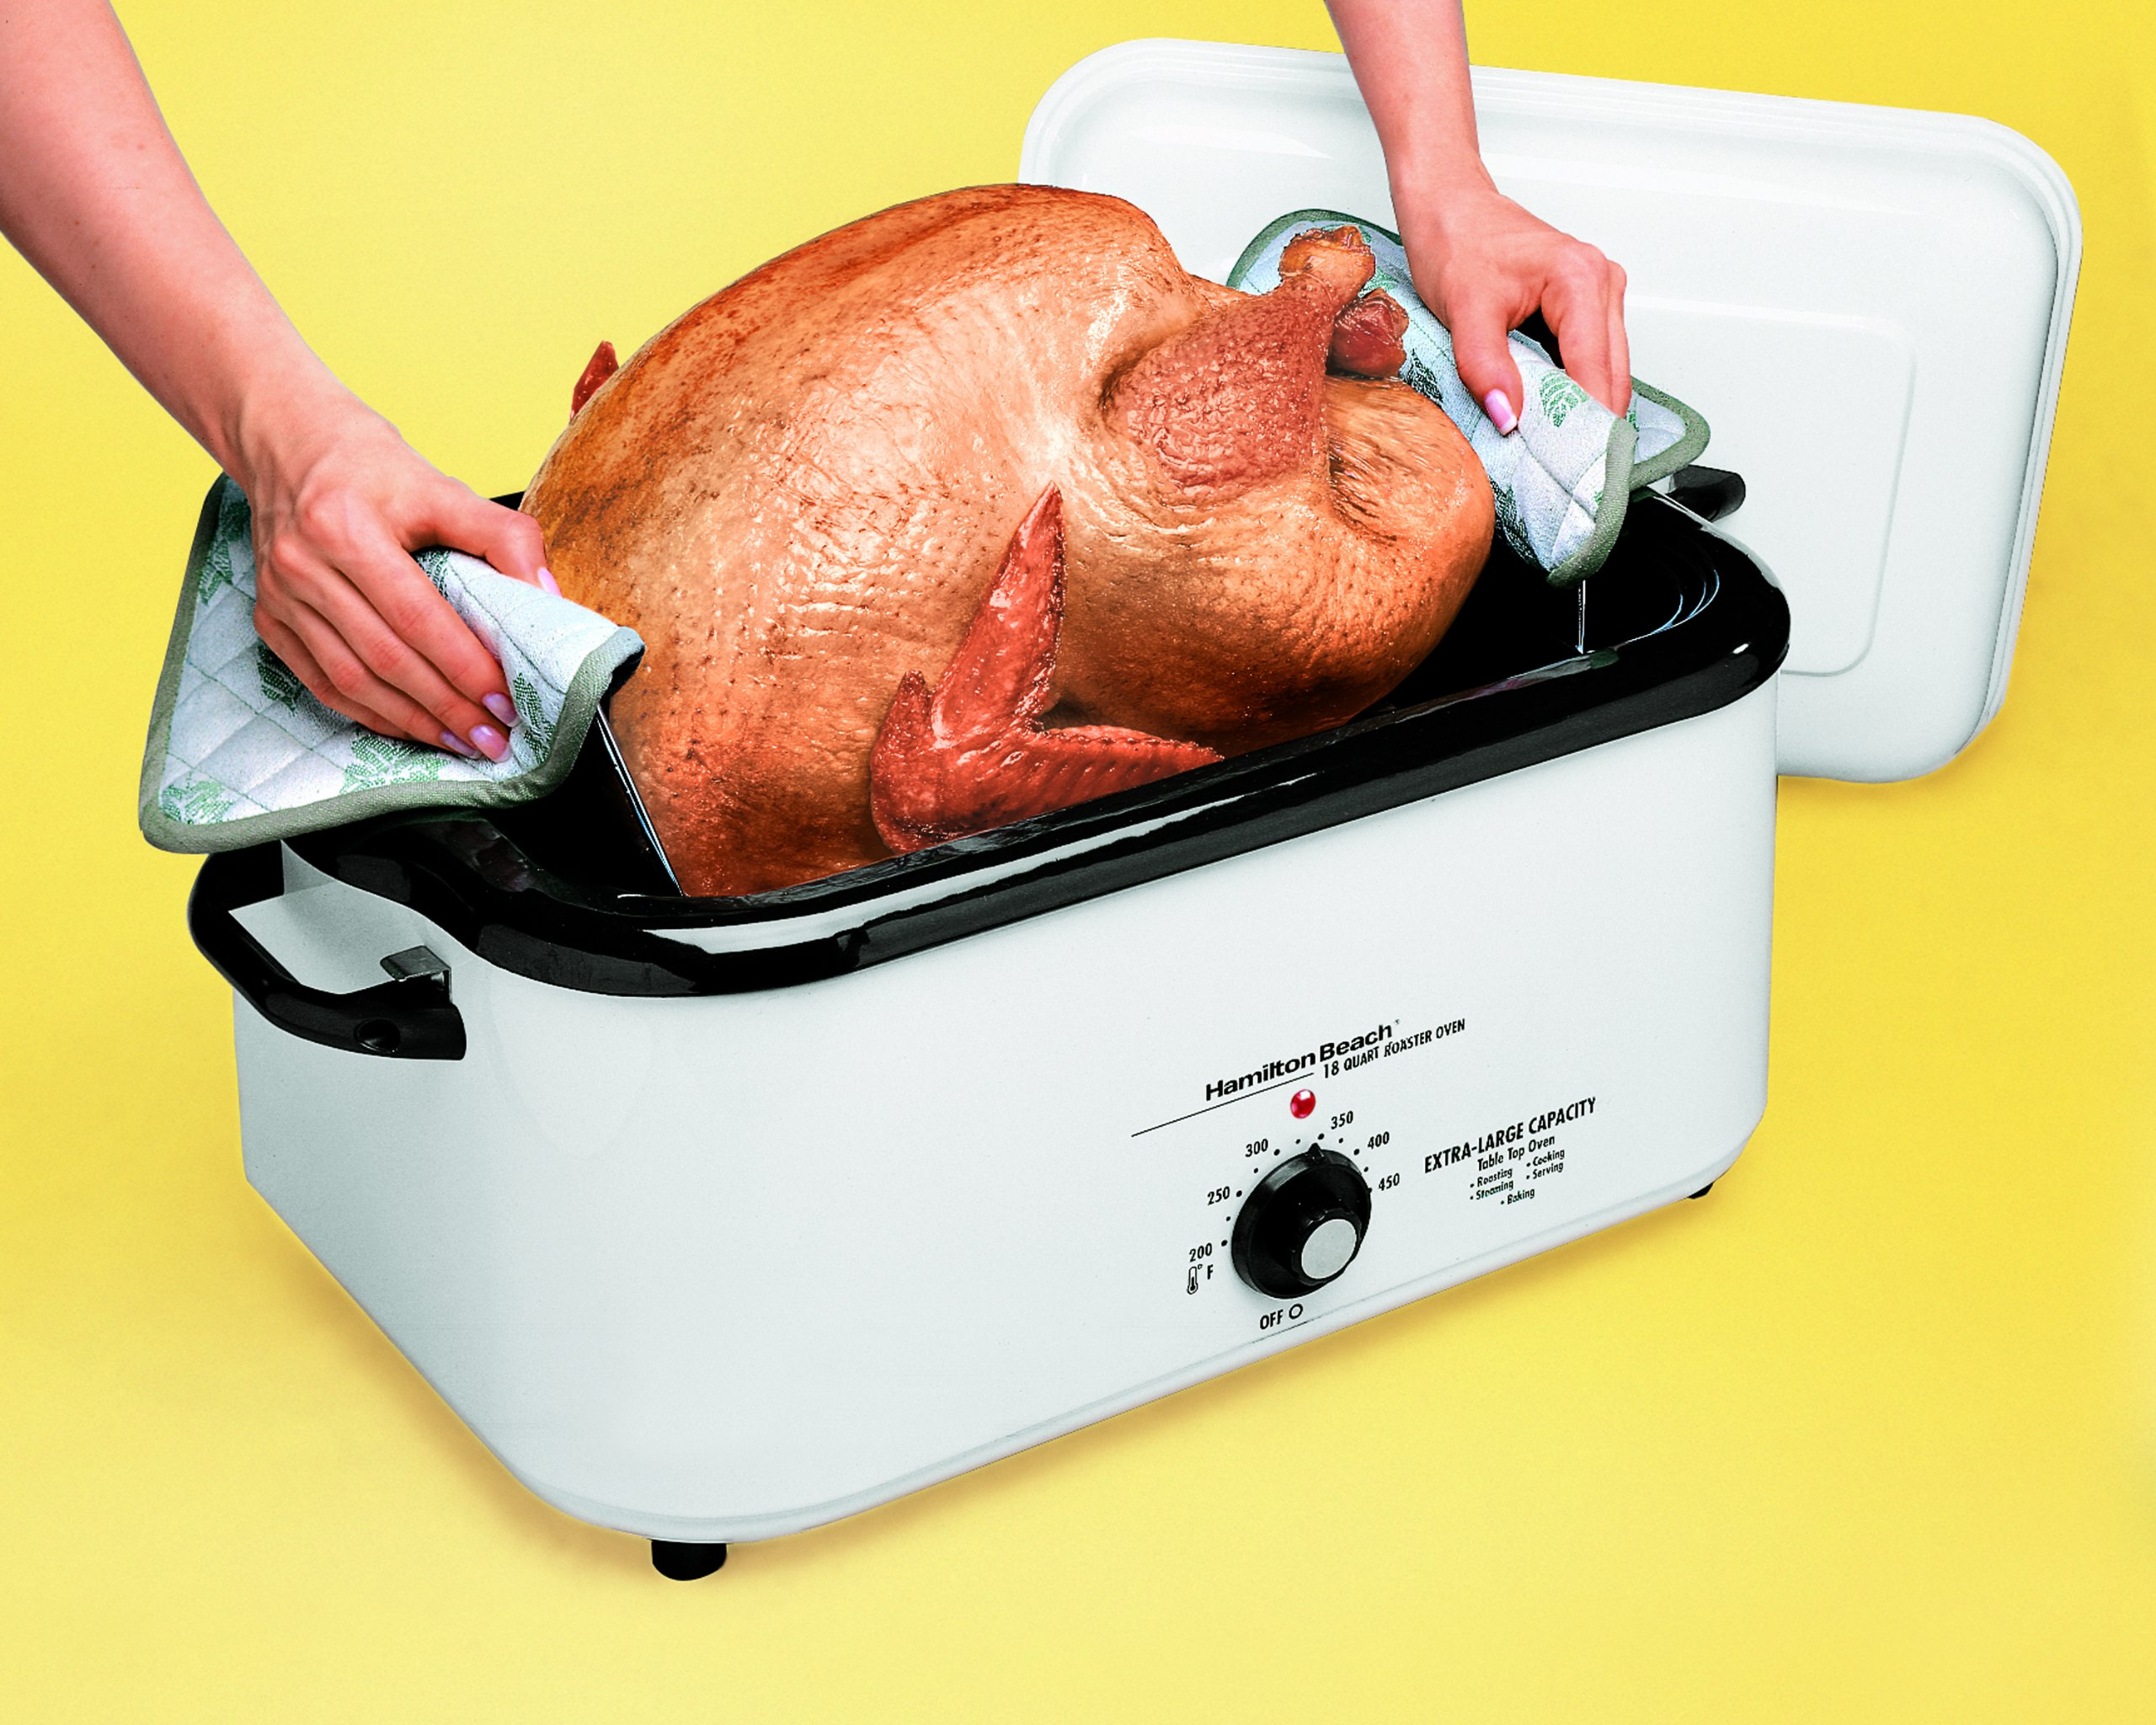 Hamilton Beach 32182 18-Quart Roaster Oven by Hamilton Beach (Image #7)